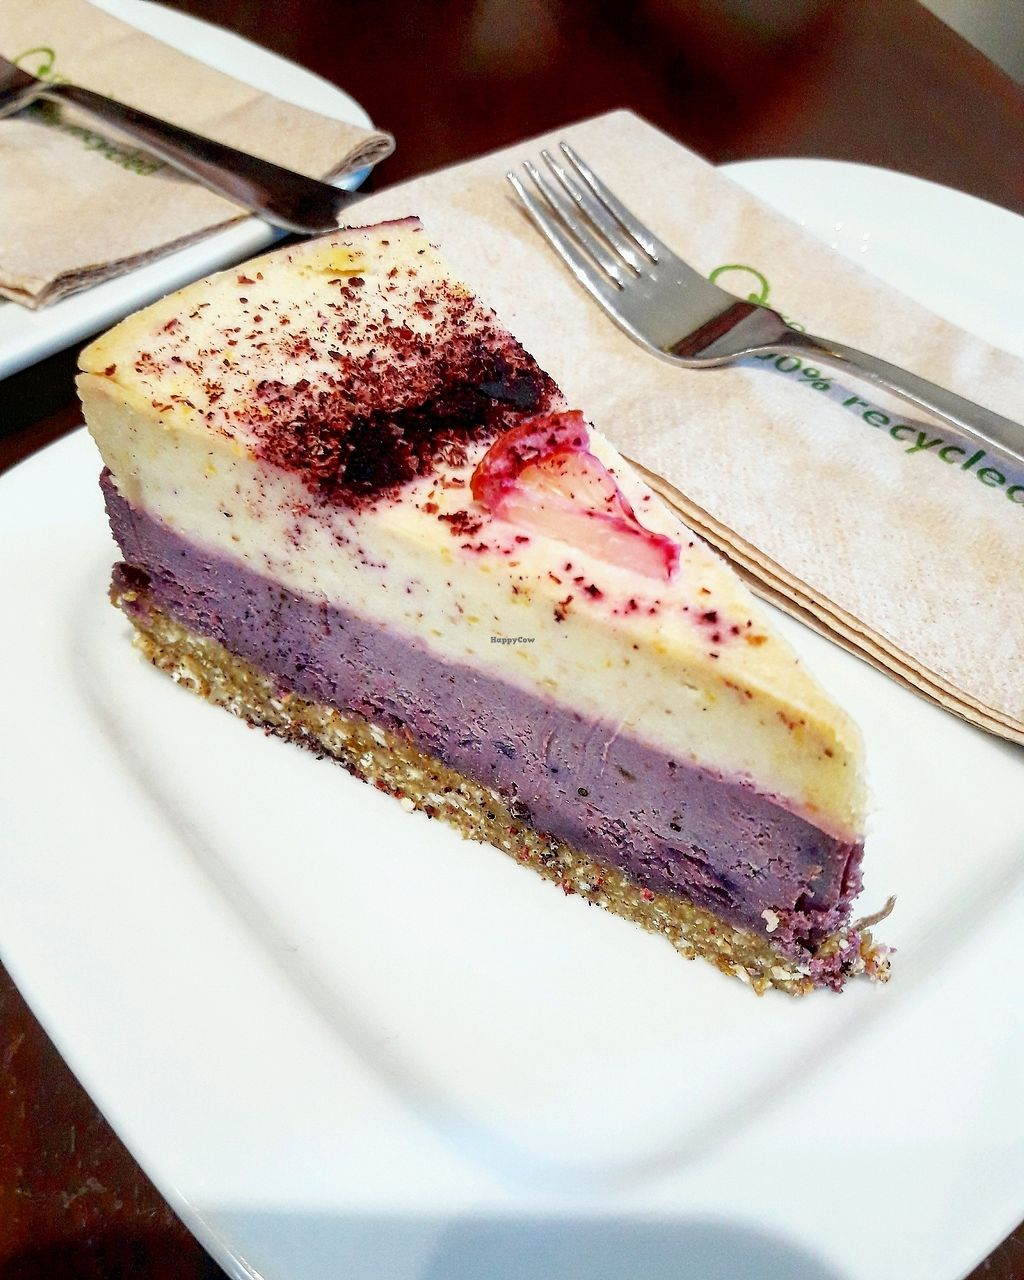 """Photo of The V & V Cafe  by <a href=""""/members/profile/Arta"""">Arta</a> <br/>lemon and berry cheesecake <br/> February 26, 2018  - <a href='/contact/abuse/image/87908/364149'>Report</a>"""